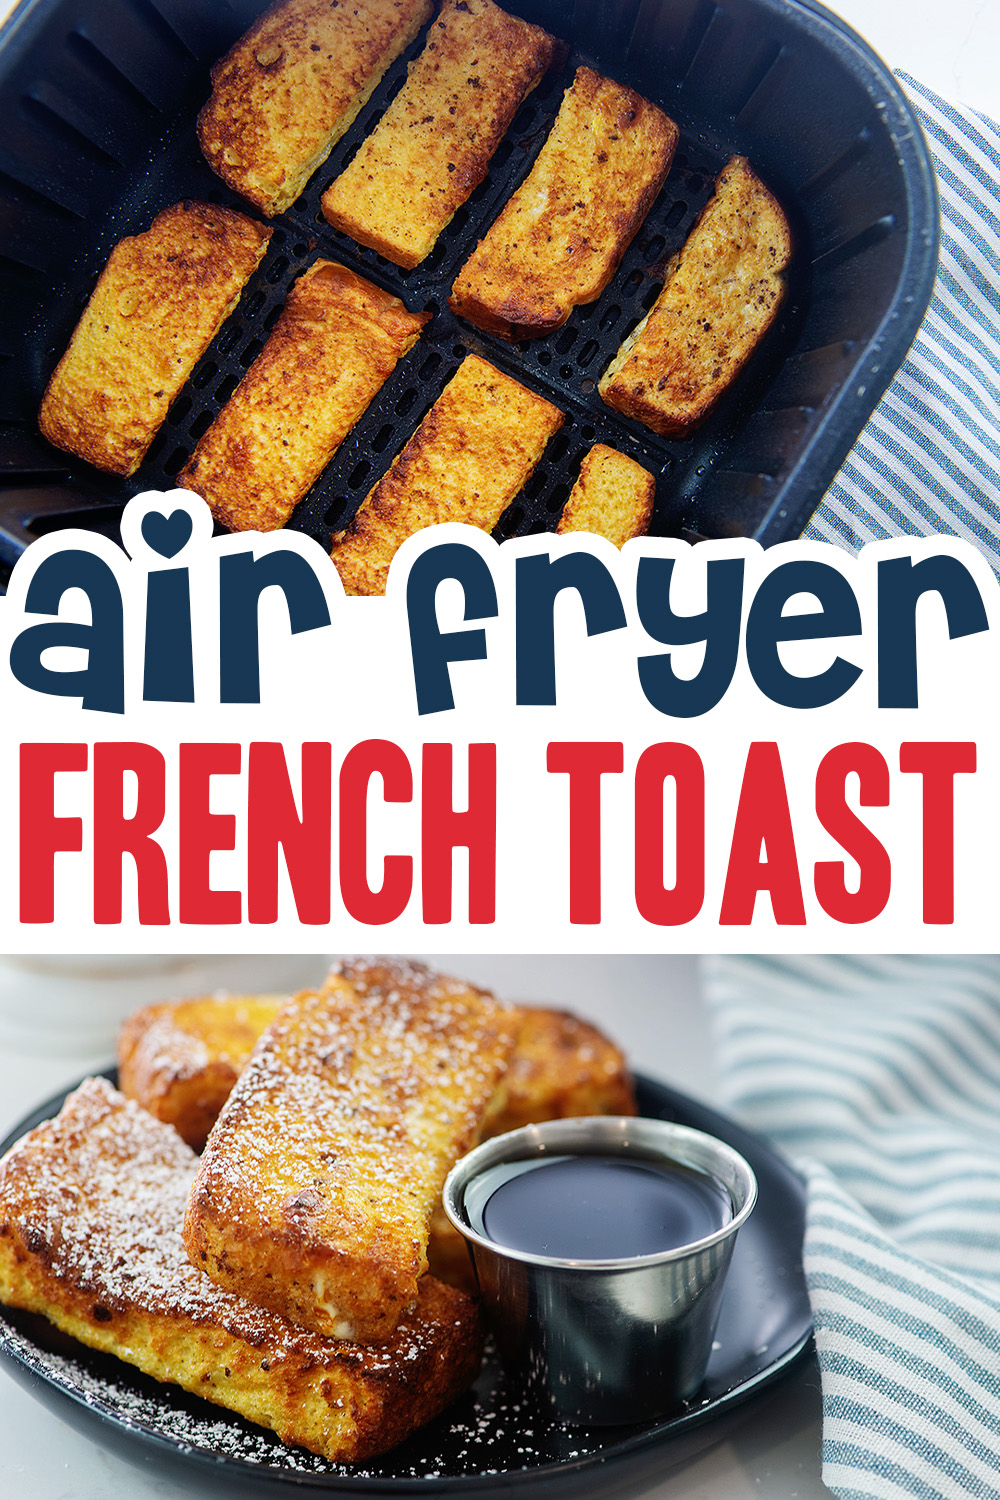 Craving a sweet breakfast?  Try these French toast sticks we made in the air fryer!